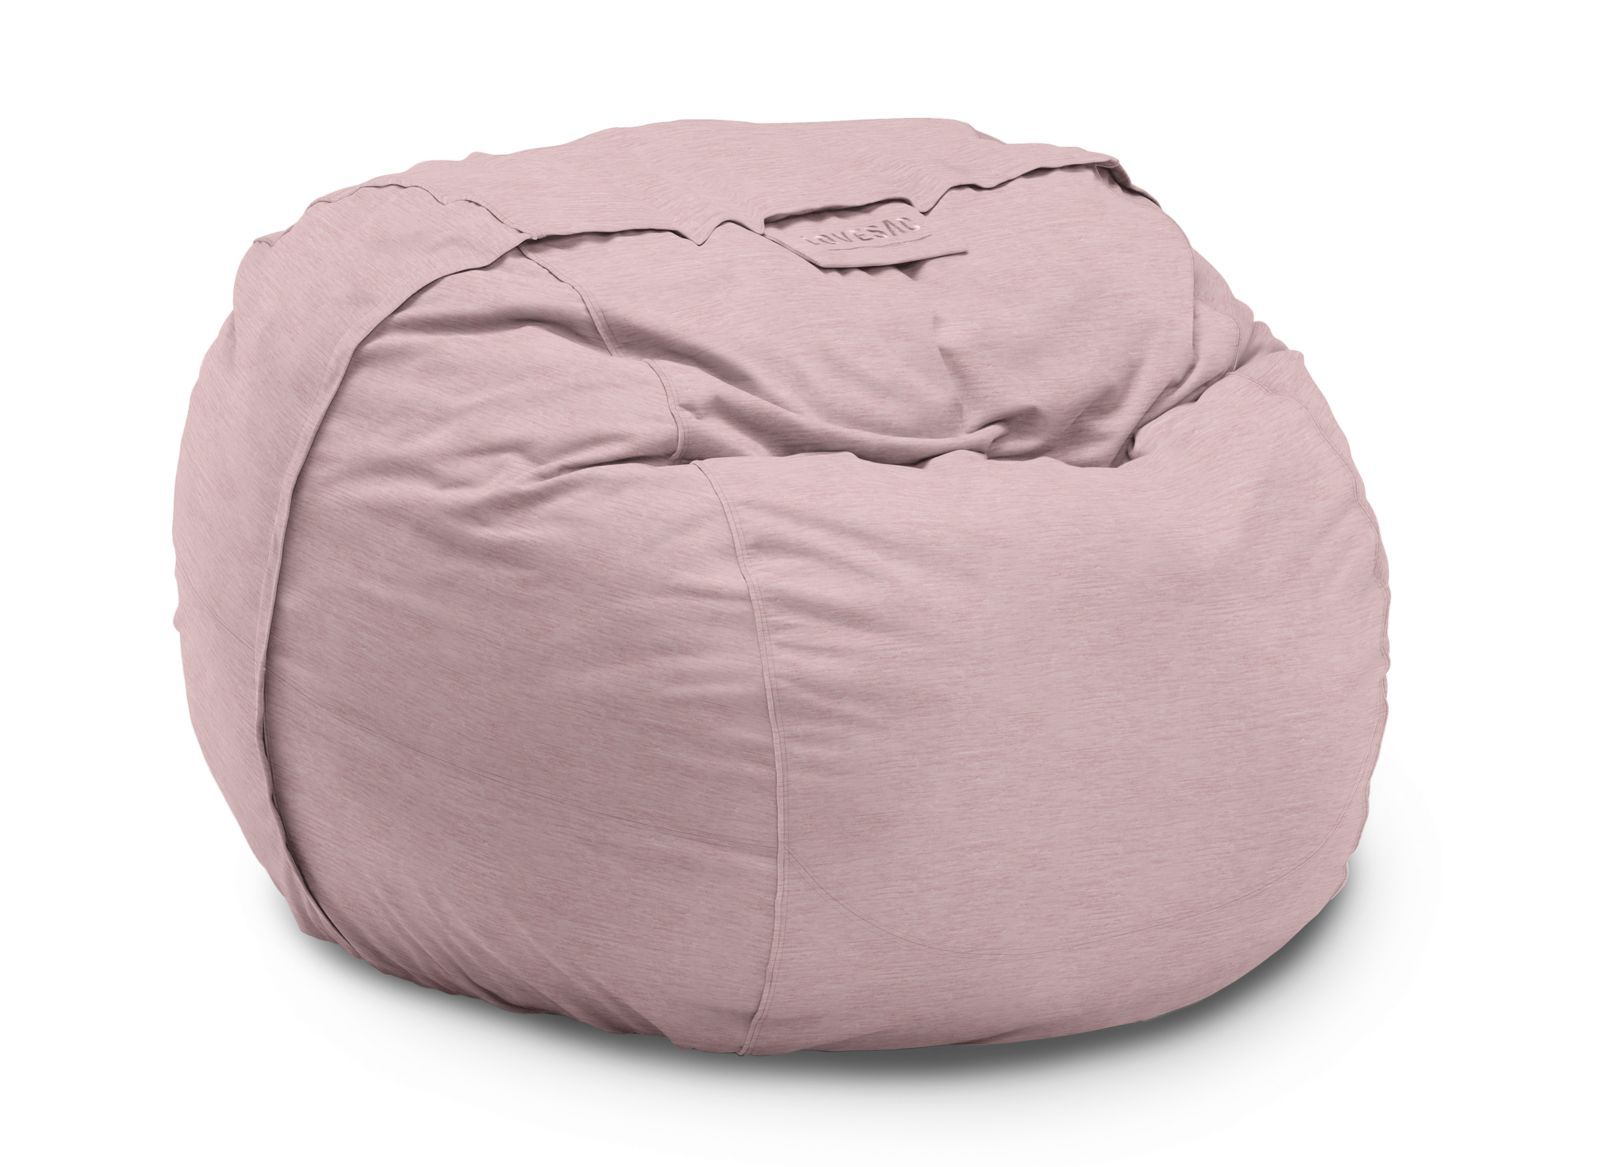 Lovesac | Sac - Supersac Garden Table And Chairs Patio Chairs Patio Chair Cushions  sc 1 st  Pinterest & Oversized Bean Bag Chair - Supersac | apartment | Oversized bean bag ...